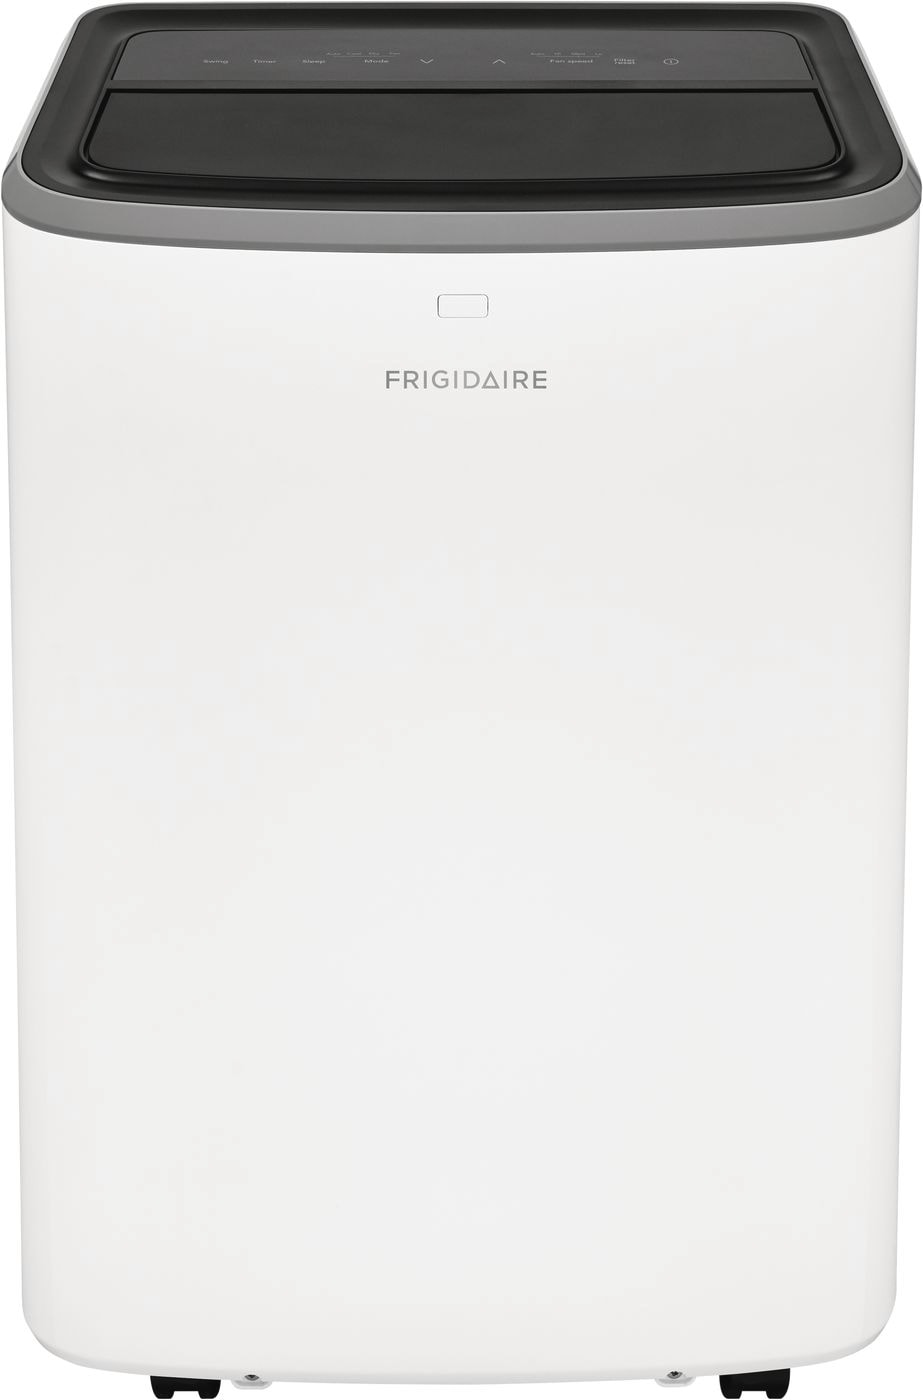 Frigidaire 13,000 BTU Portable Room Air Conditioner